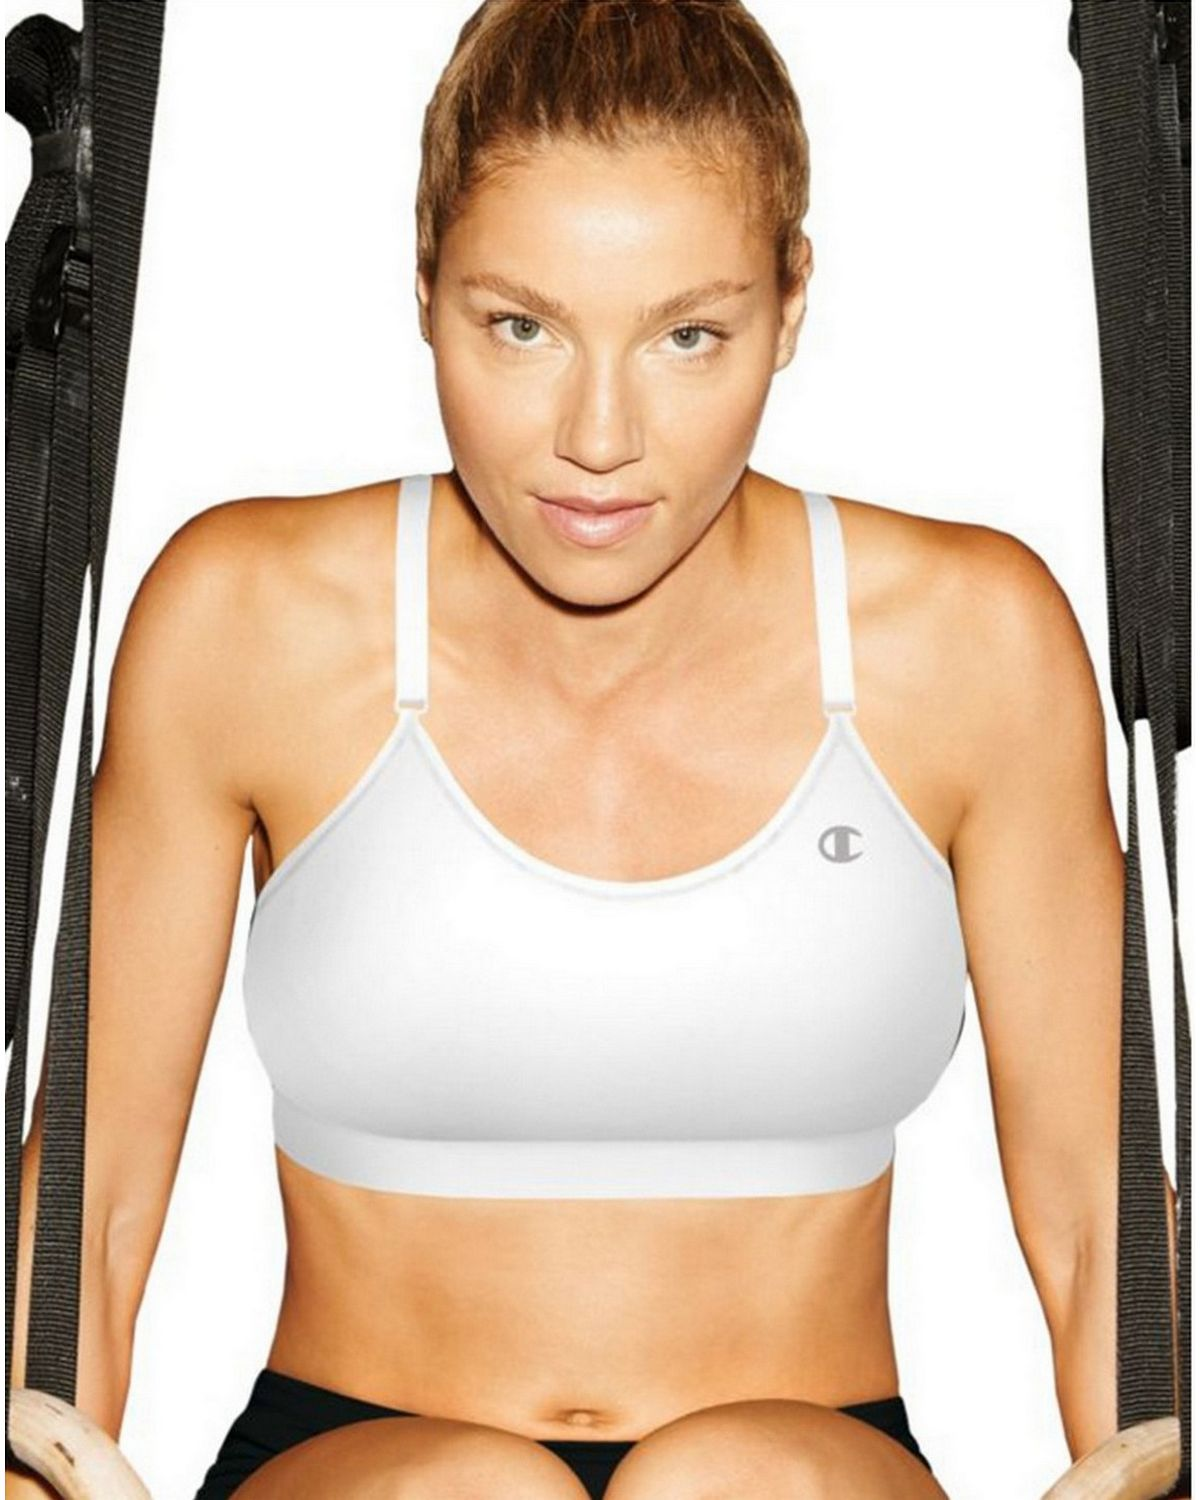 Buy Champion B9500 Absolute Cami Sports Bra with SmoothTec Band 6a68c75e8